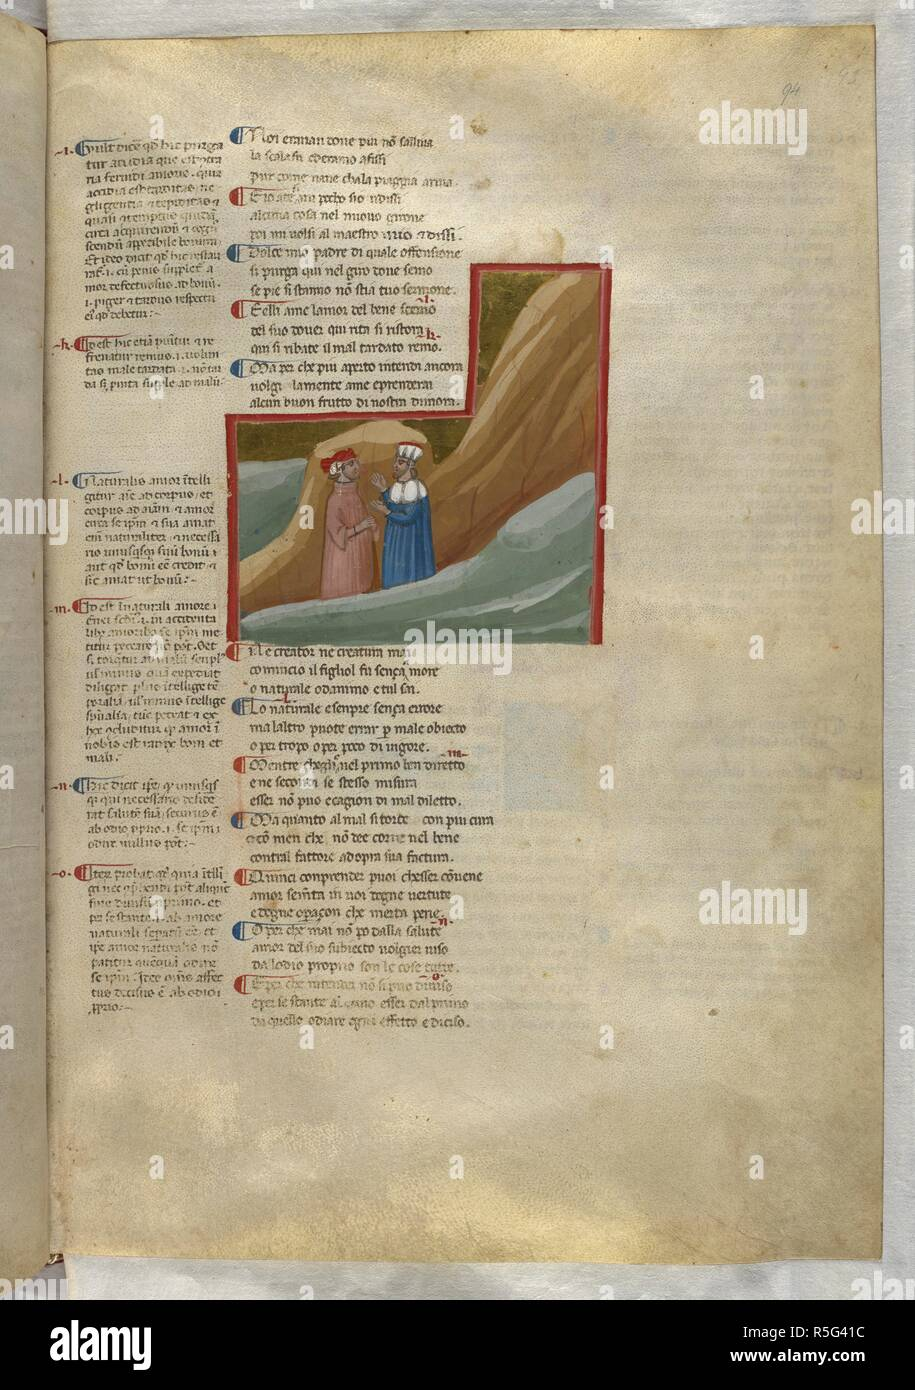 Purgatorio: Dante and Virgil talking about the nature of love. Dante Alighieri, Divina Commedia ( The Divine Comedy ), with a commentary in Latin. 1st half of the 14th century. Source: Egerton 943, f.94. Language: Italian, Latin. - Stock Image